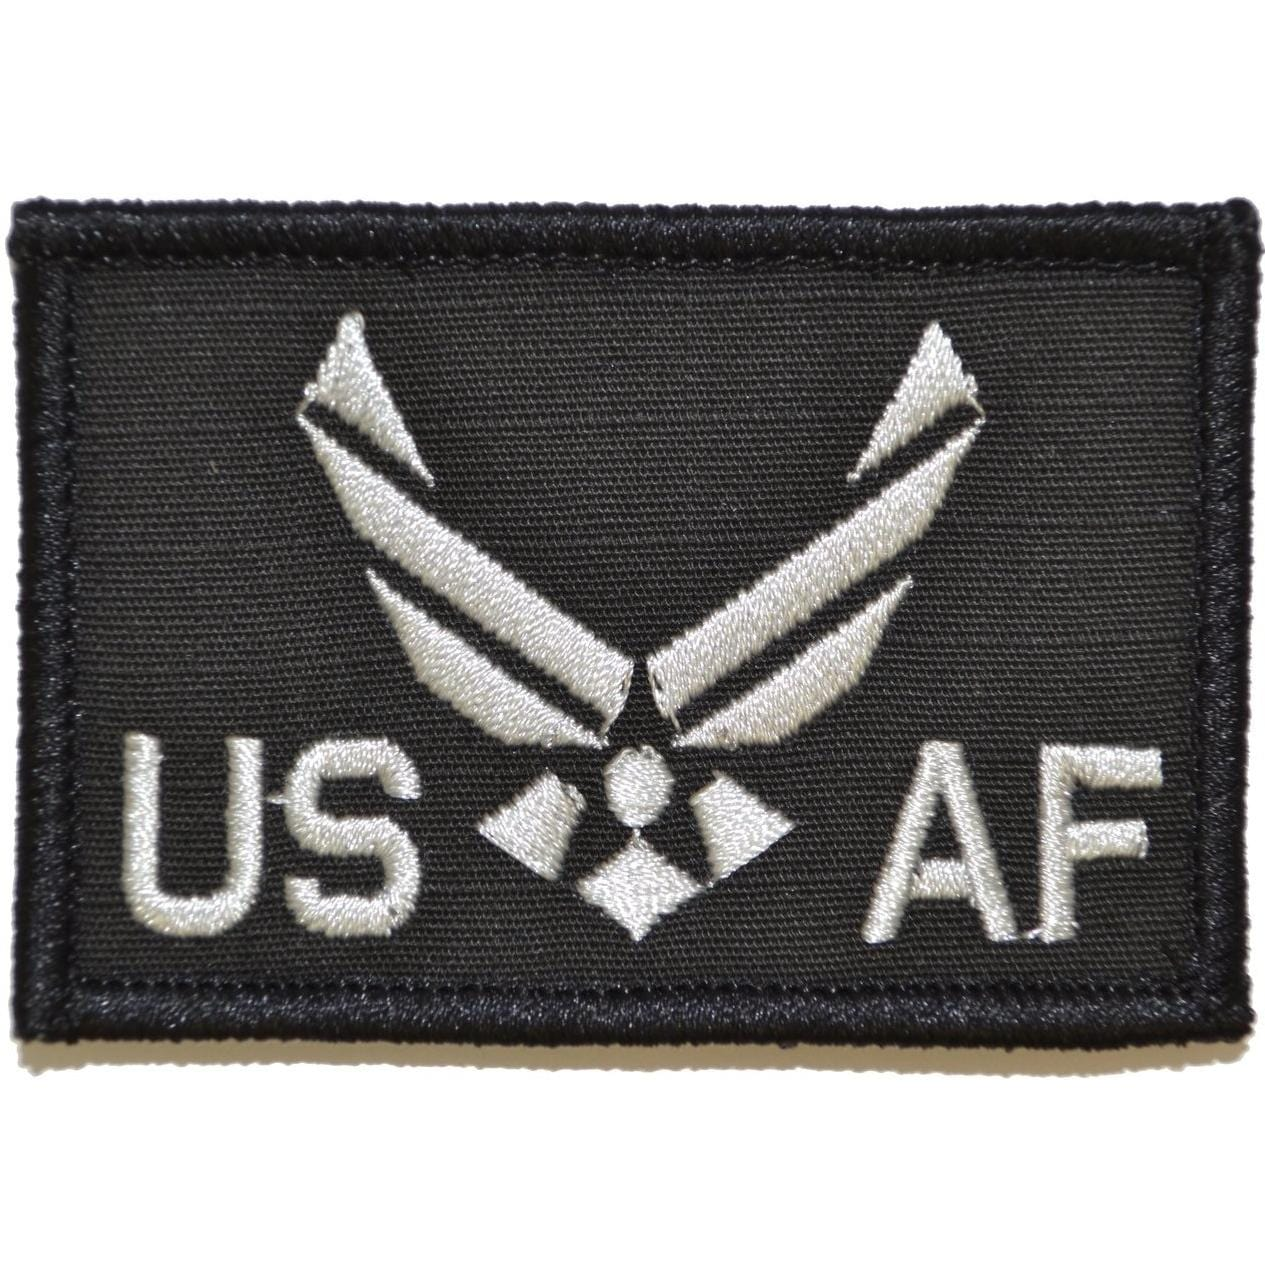 USAF, U.S. Air Force Emblem - 2x3 Patch